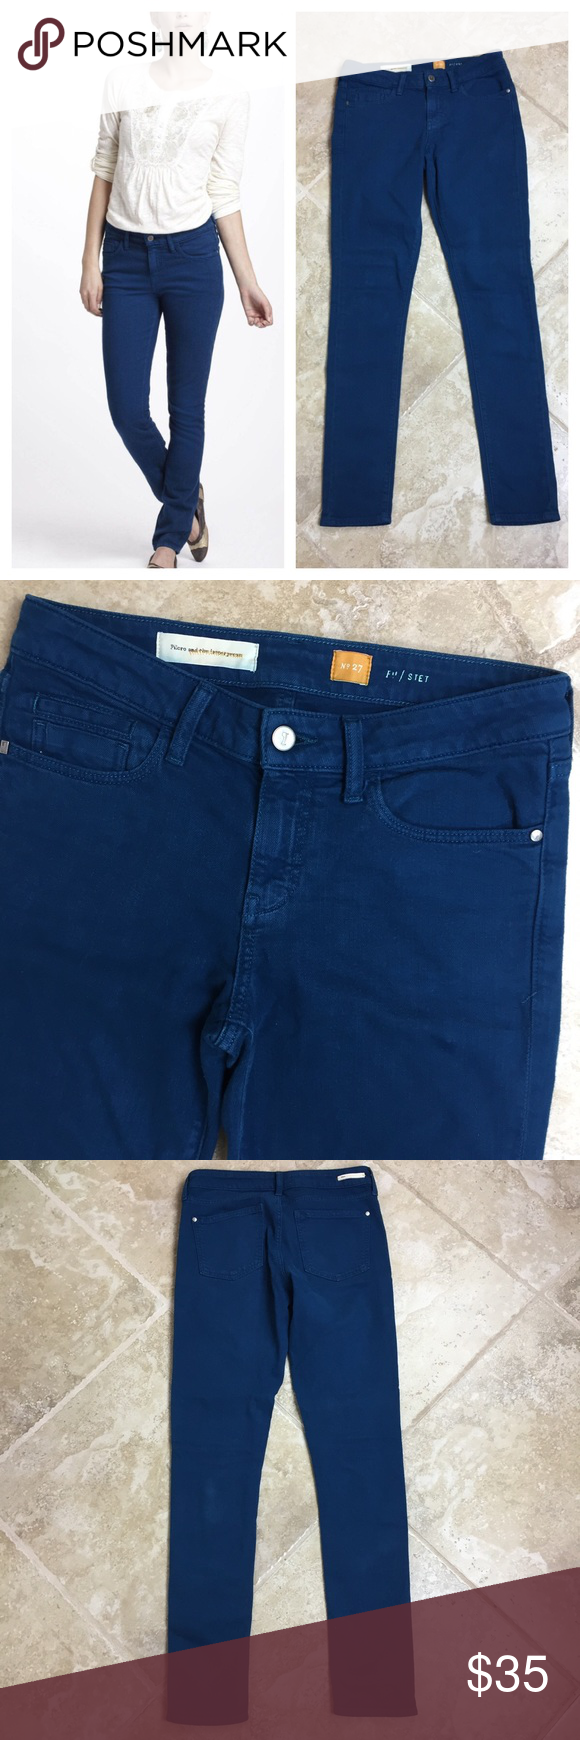 ANTHROPOLOGIE Pilcro Press STET Skinny Jeans These jeans are in great condition! 94% cotton 5% polyester 1% spandex. 16 inches across the waist. 9 inch rise. 32 inch inseam. The color is more of a turquoise in real life. It photographs more of a royal blue. It is a bit lighter. Non-smoking pet free home.           🔹suggested user 🔹fast shipper🔹                                   🔸bundle to save 15%🔸300+ items🔸 Anthropologie Jeans Skinny